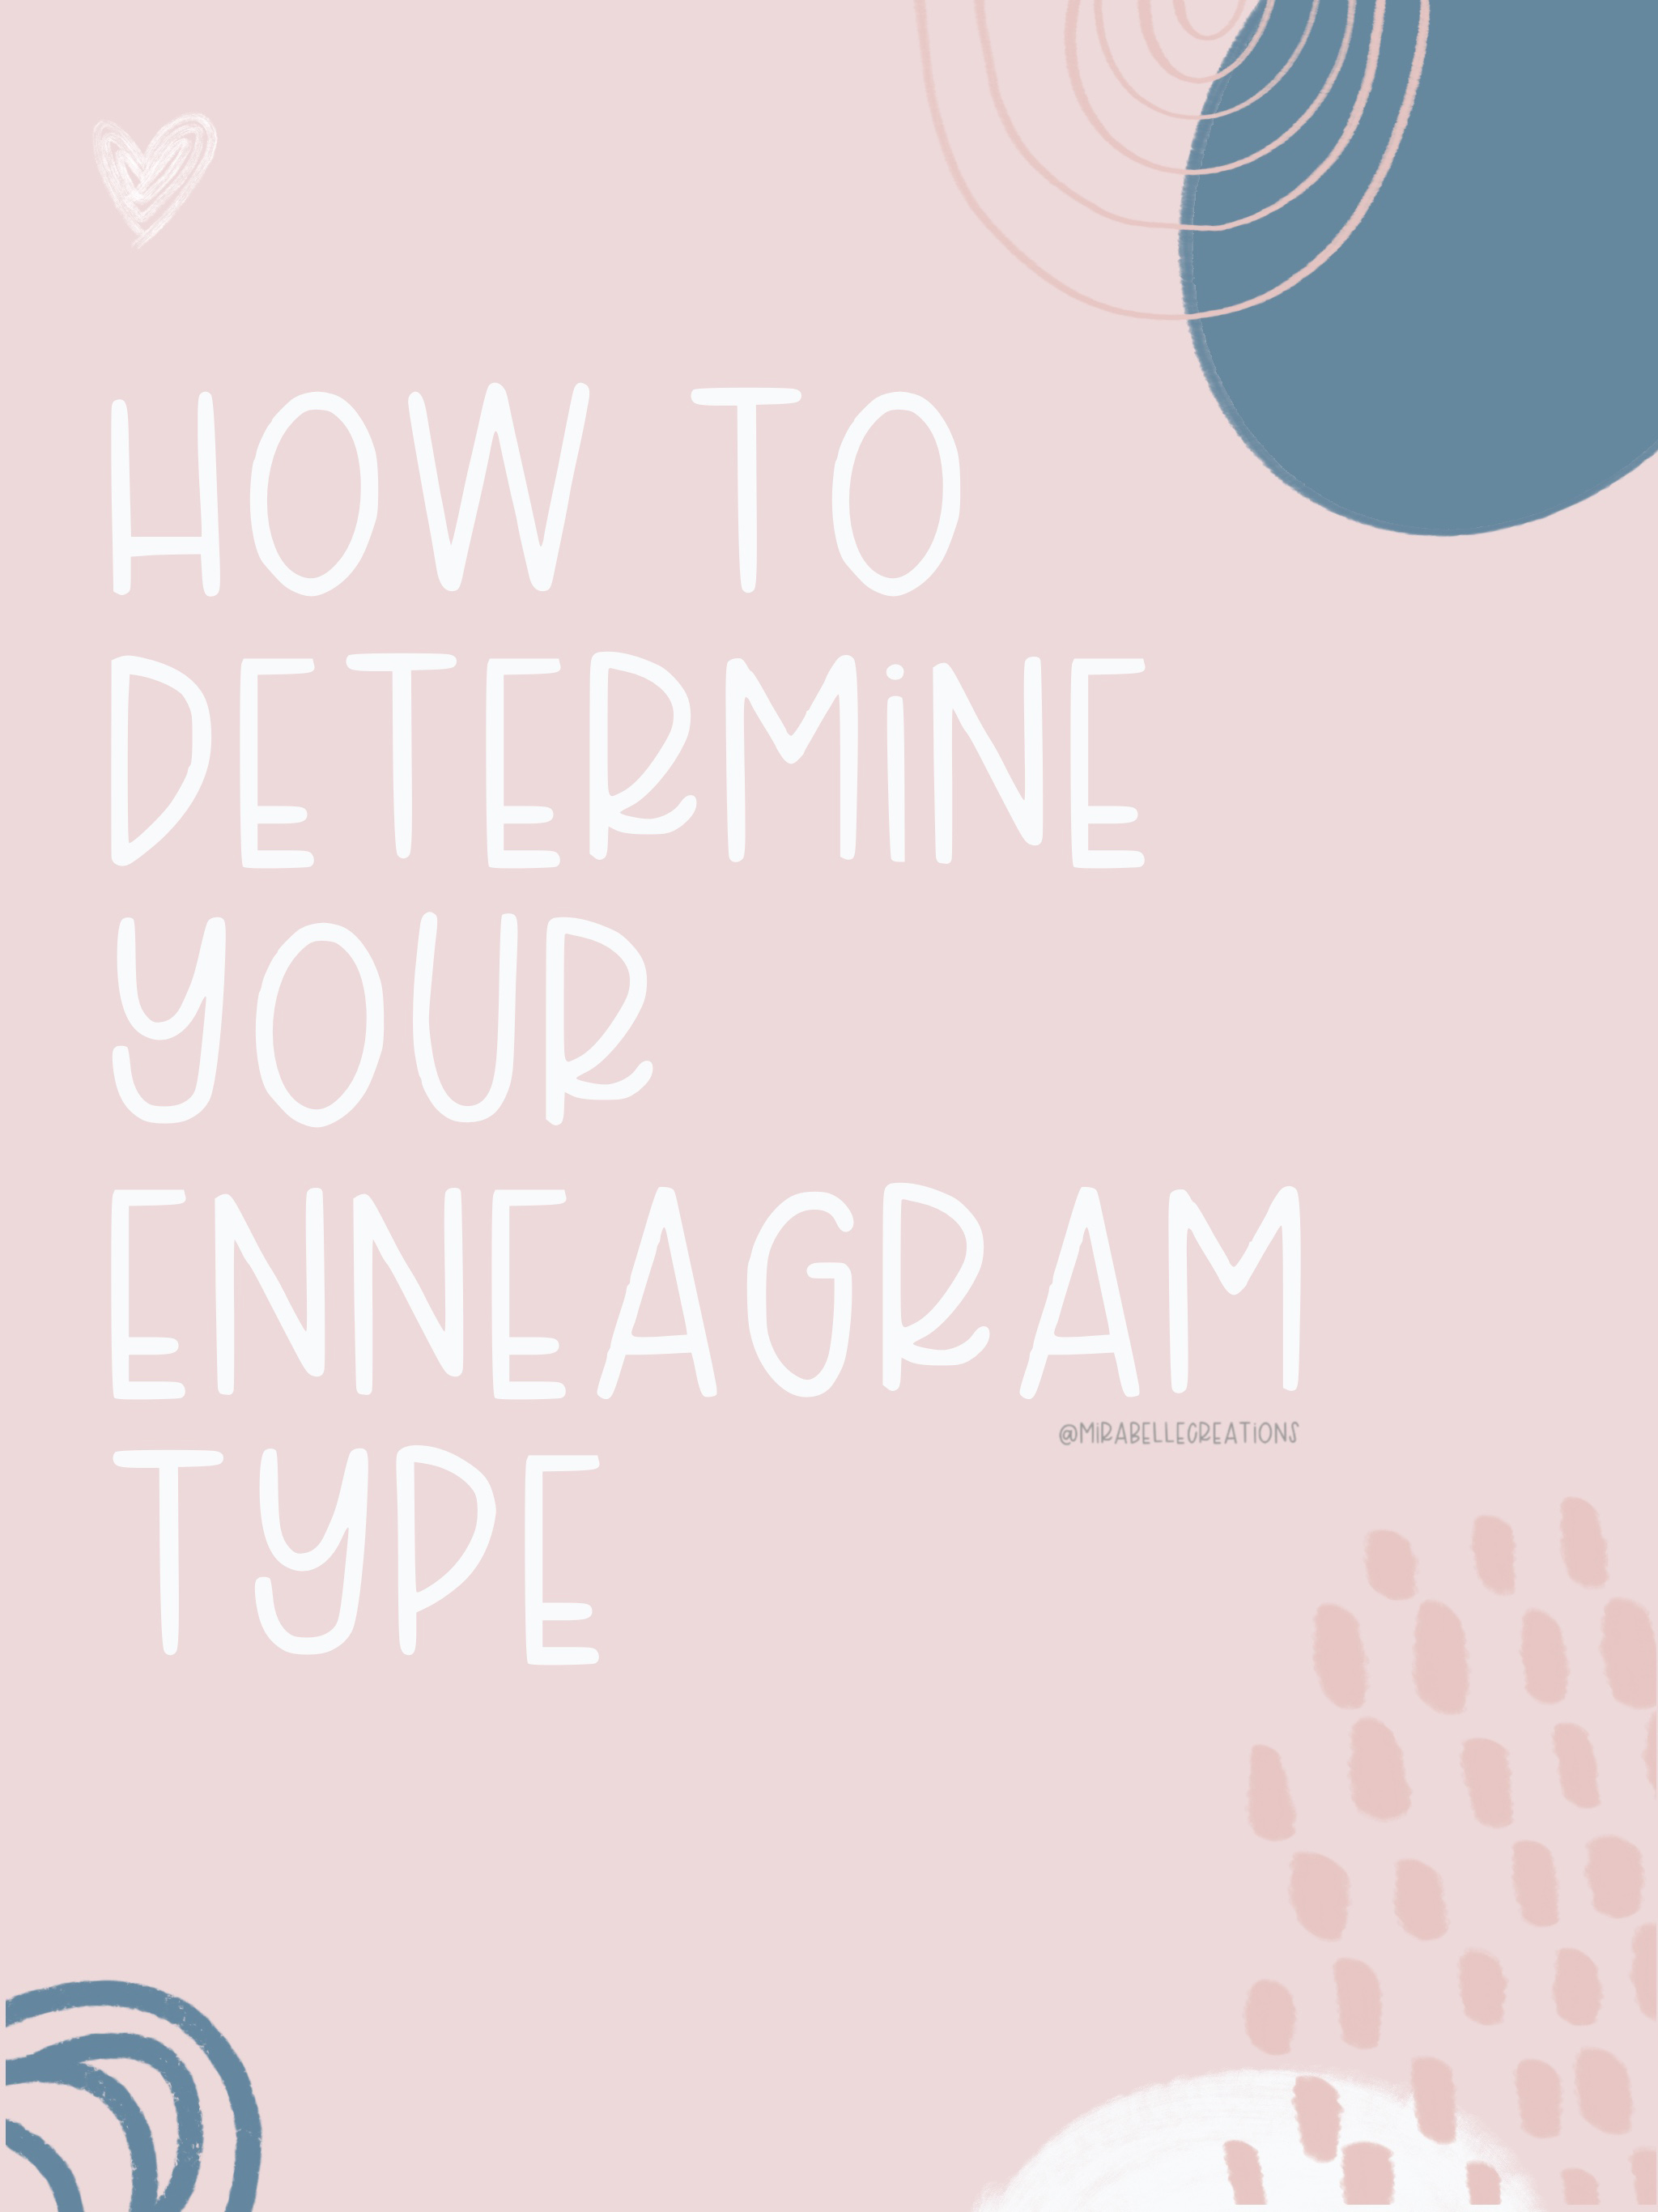 How to Determine Your Enneagram Type by Mirabelle Creations